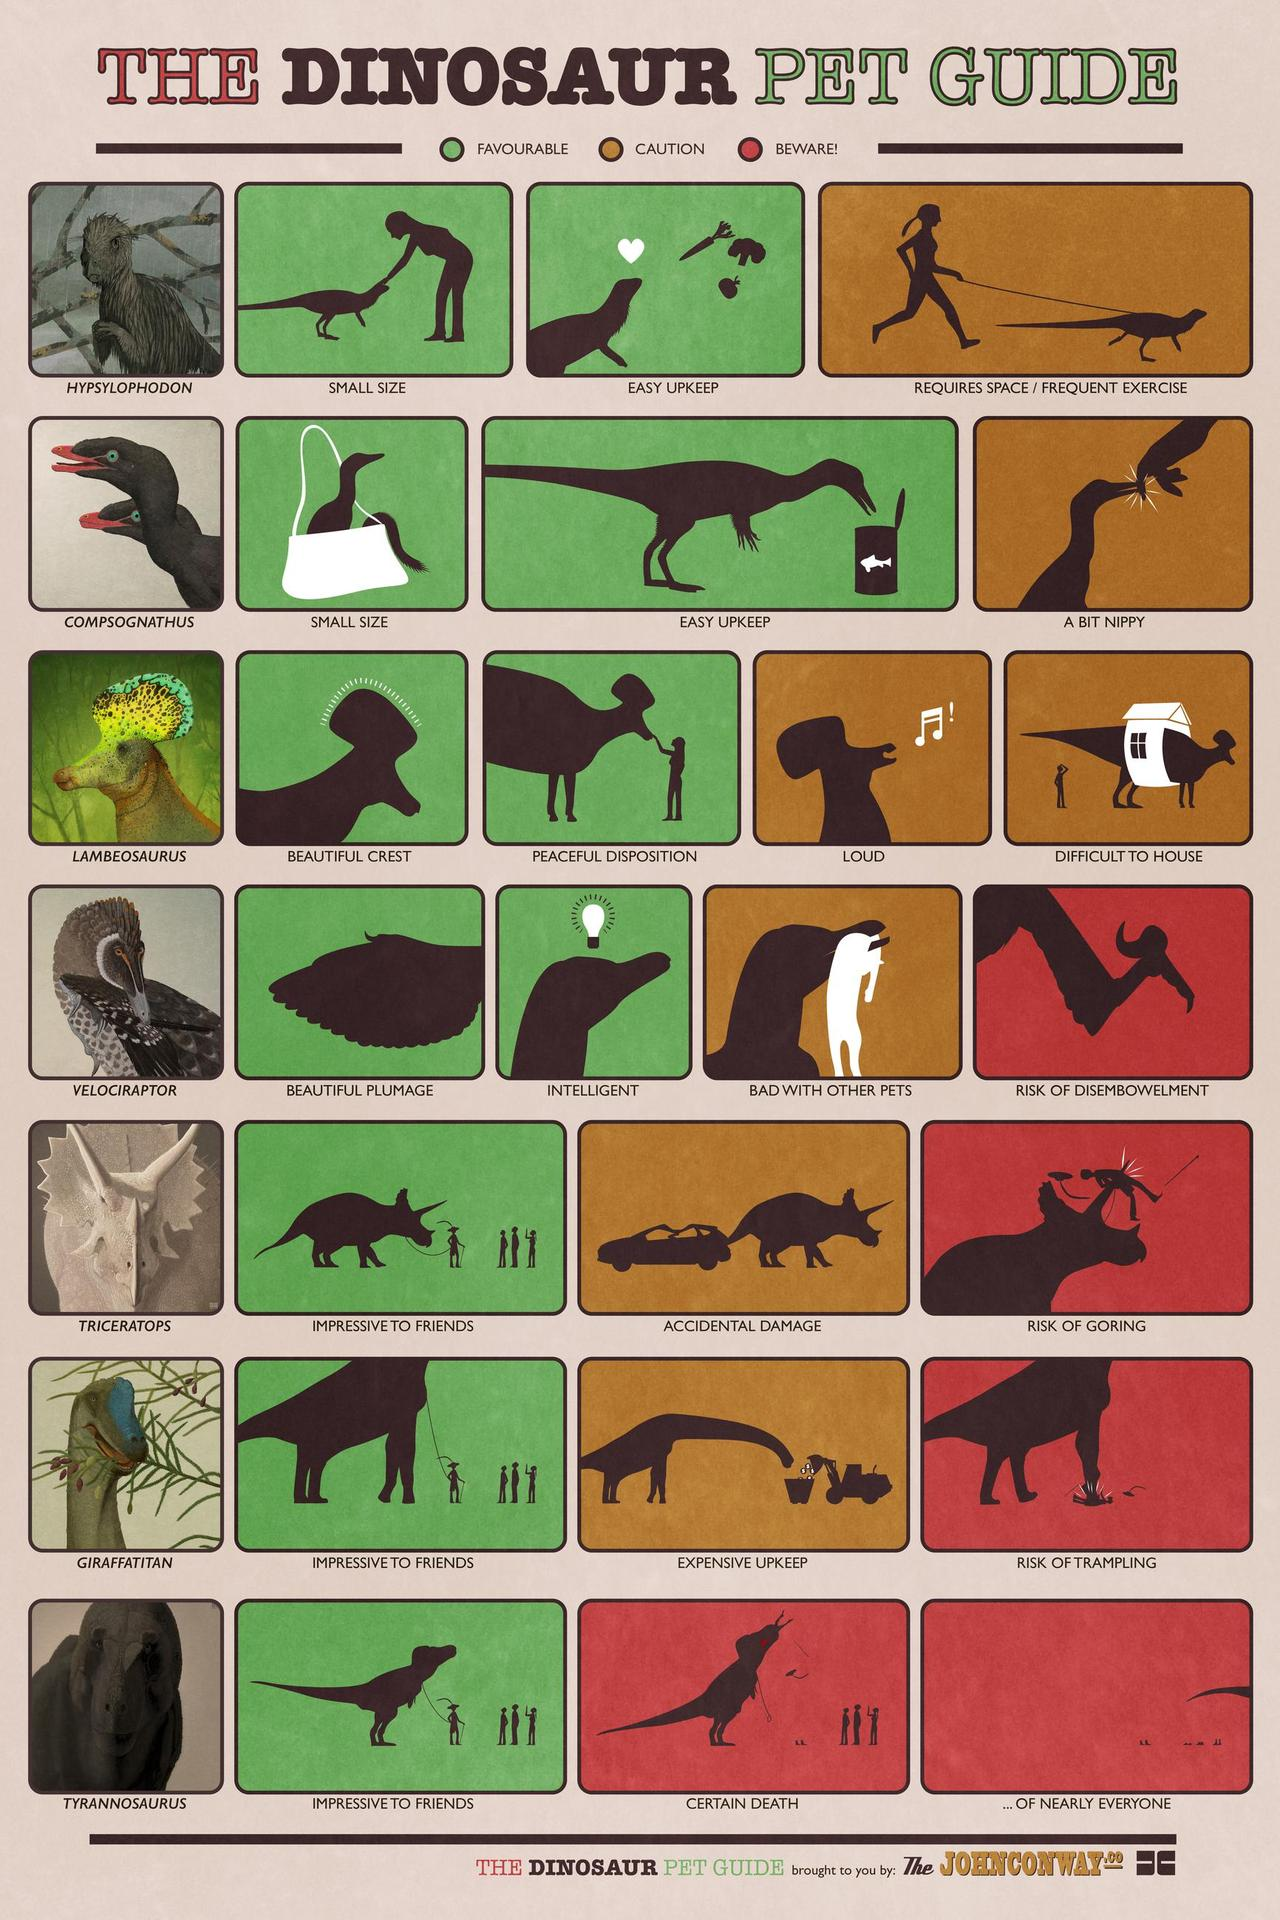 Dinosaur Pet Guide by John Conway (Via I Love Charts)